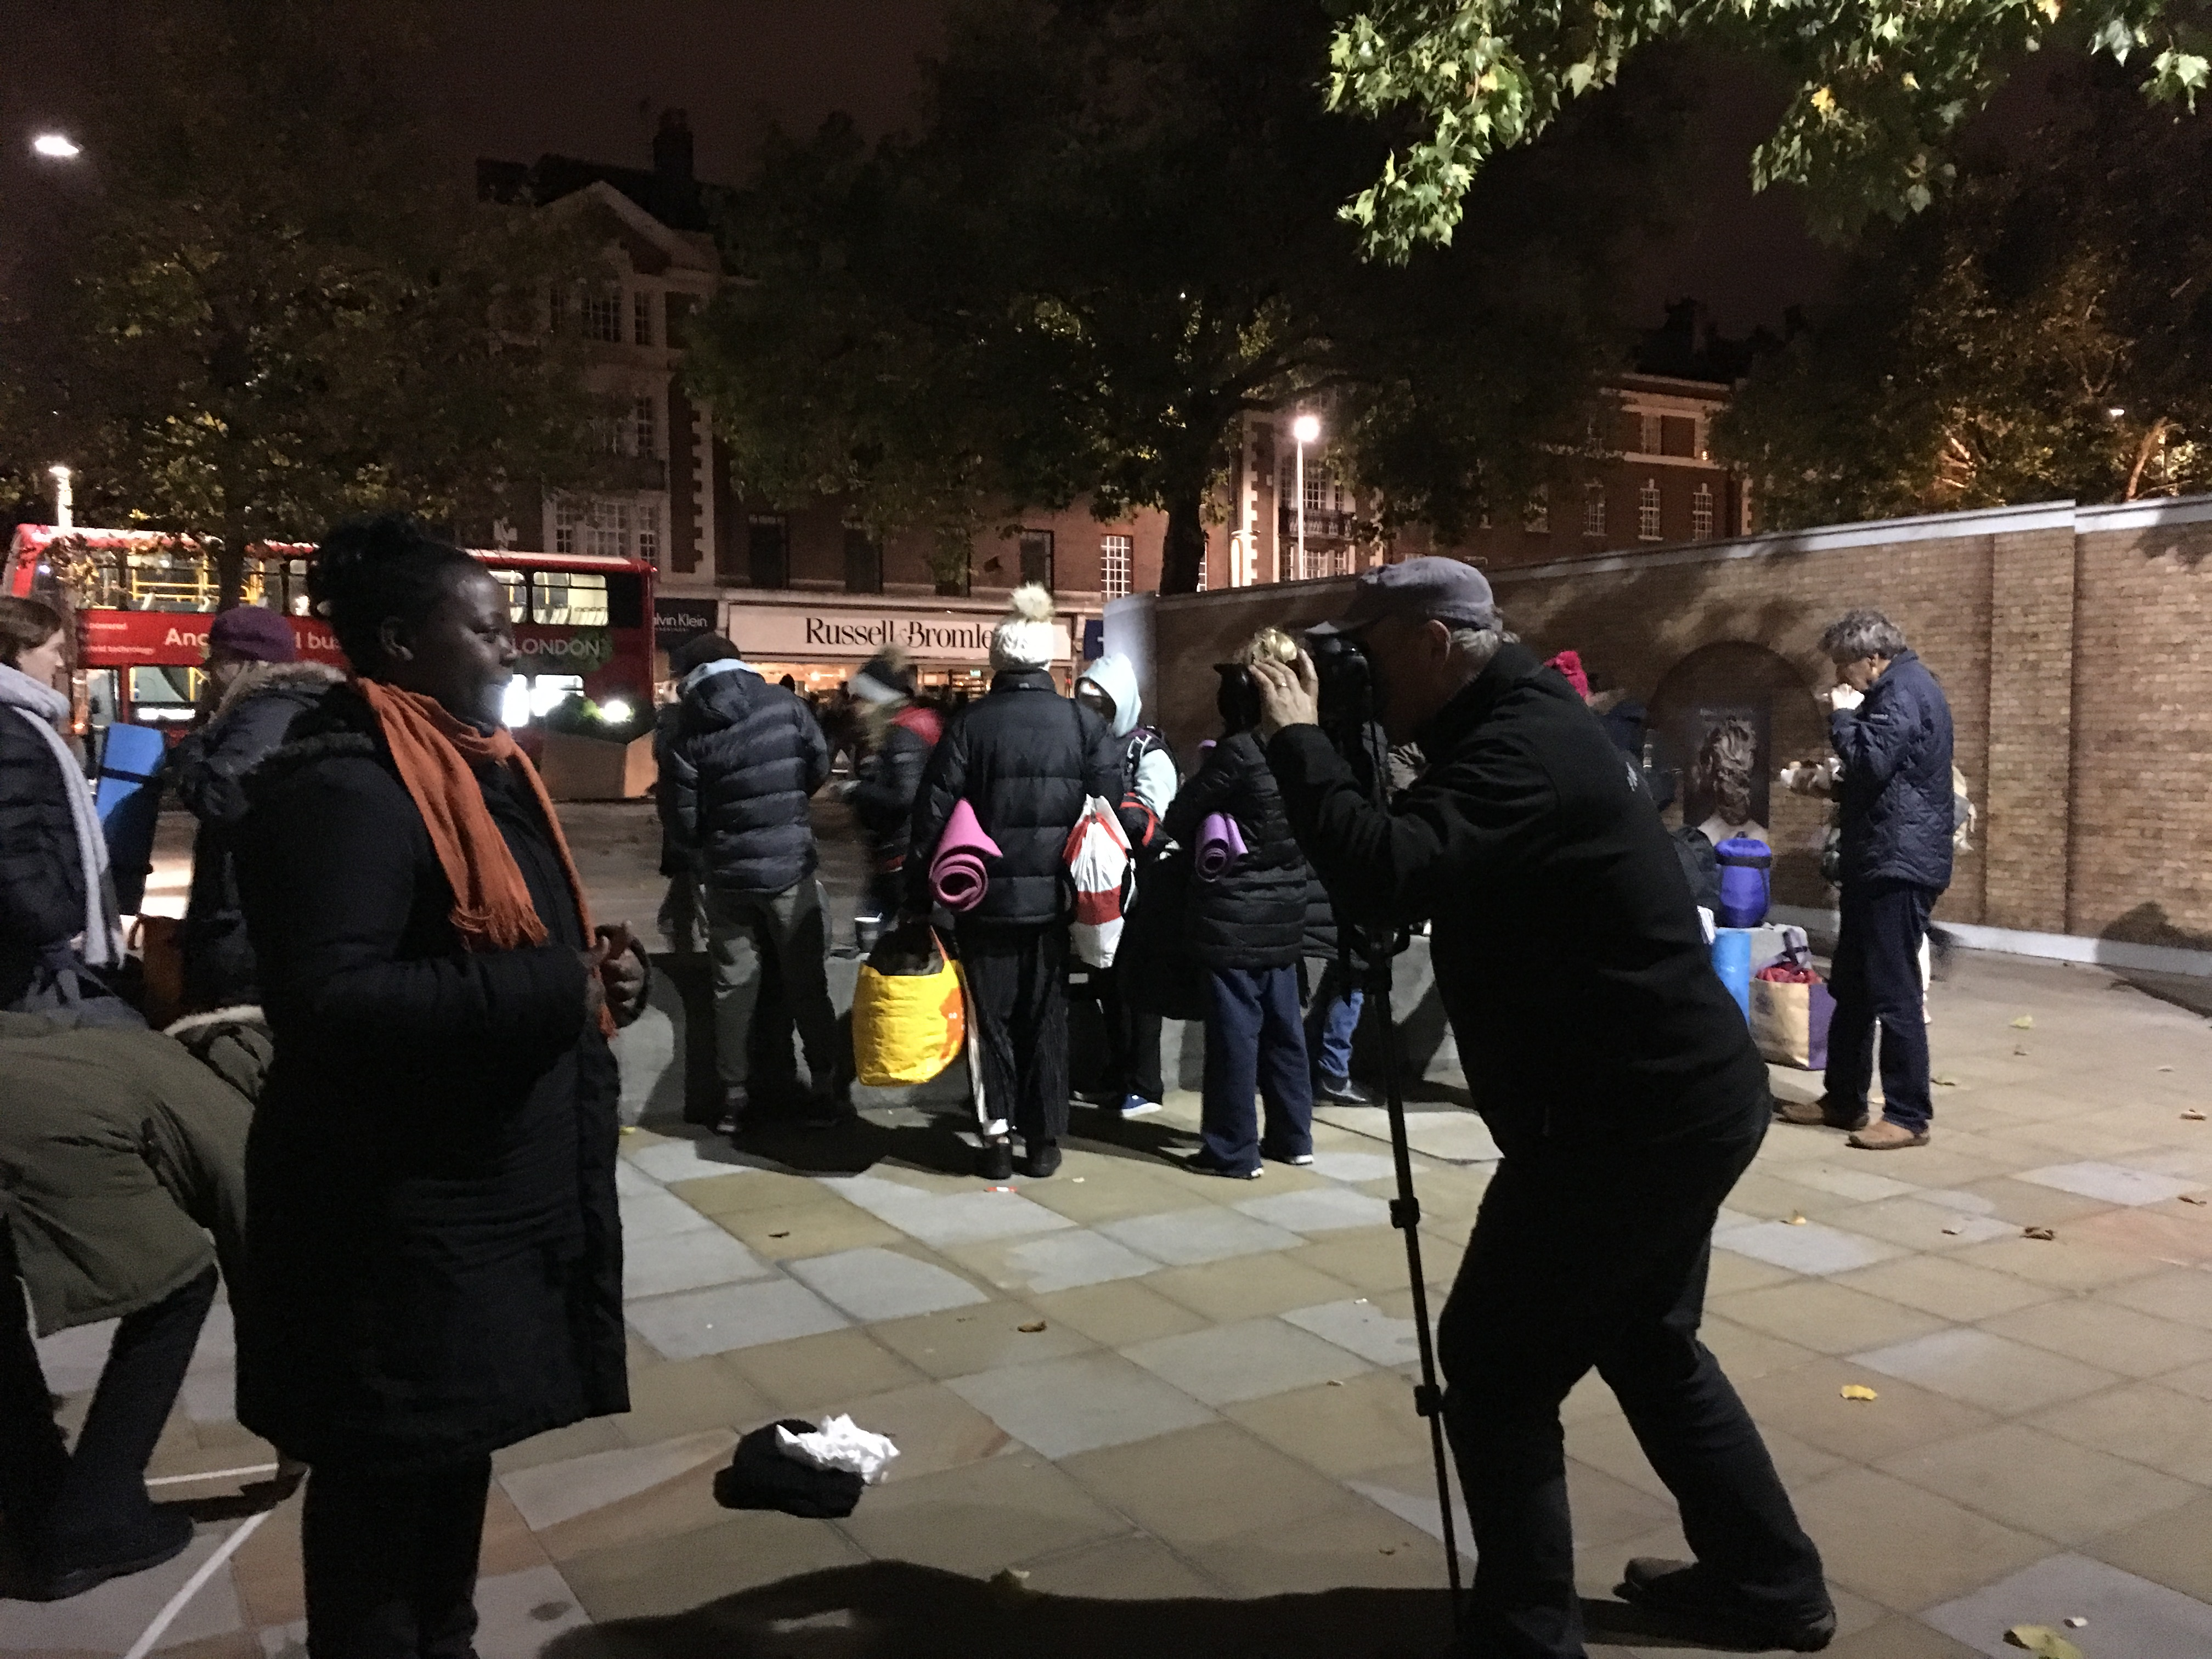 photographer Franc Vissers in action at 2017 Sleep Out